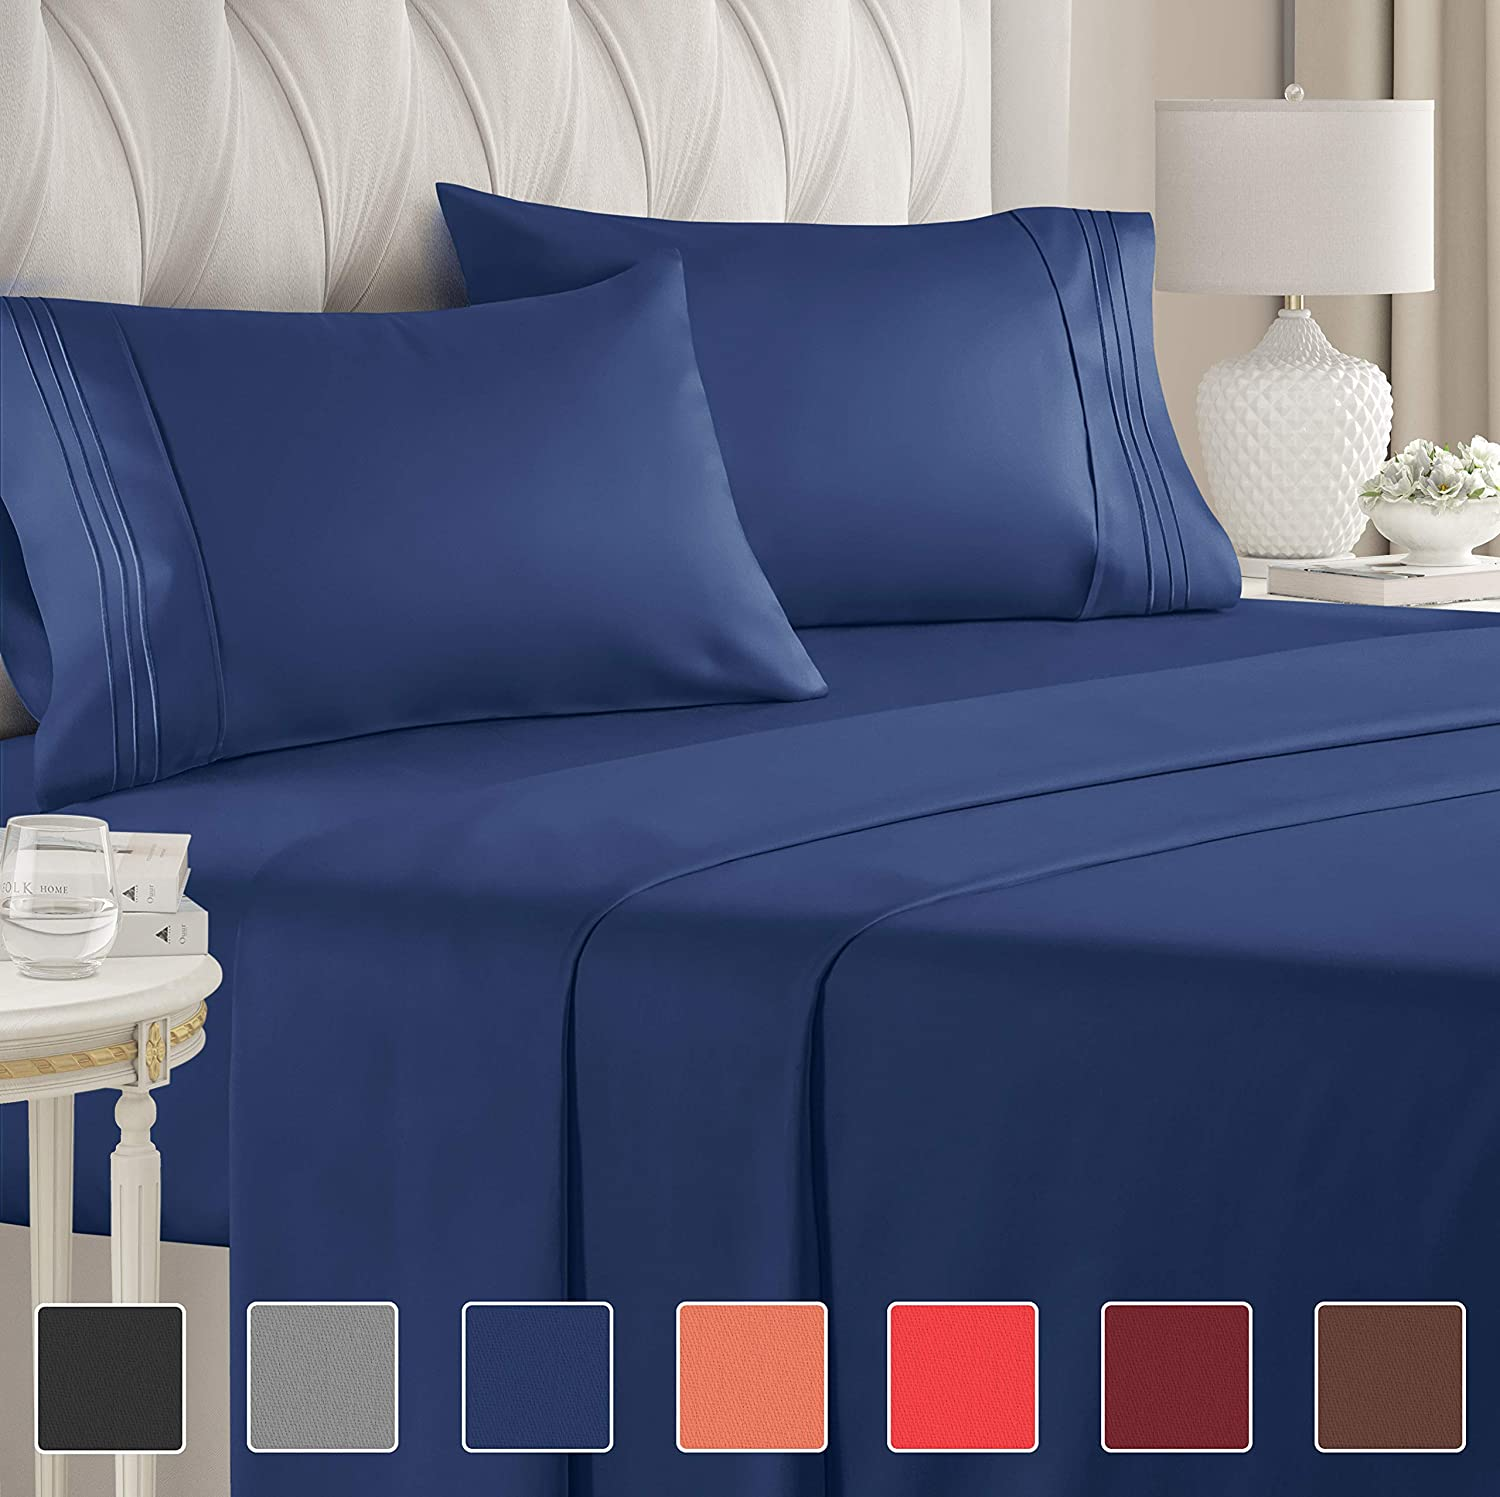 California King Size Sheet Set 4 Piece Luxury Bed Sheets Extra Soft Deep Pockets Easy Fit Breathable Cooling Wrinkle Resistant Navy Blue Royal Sheets Walmart Com Walmart Com